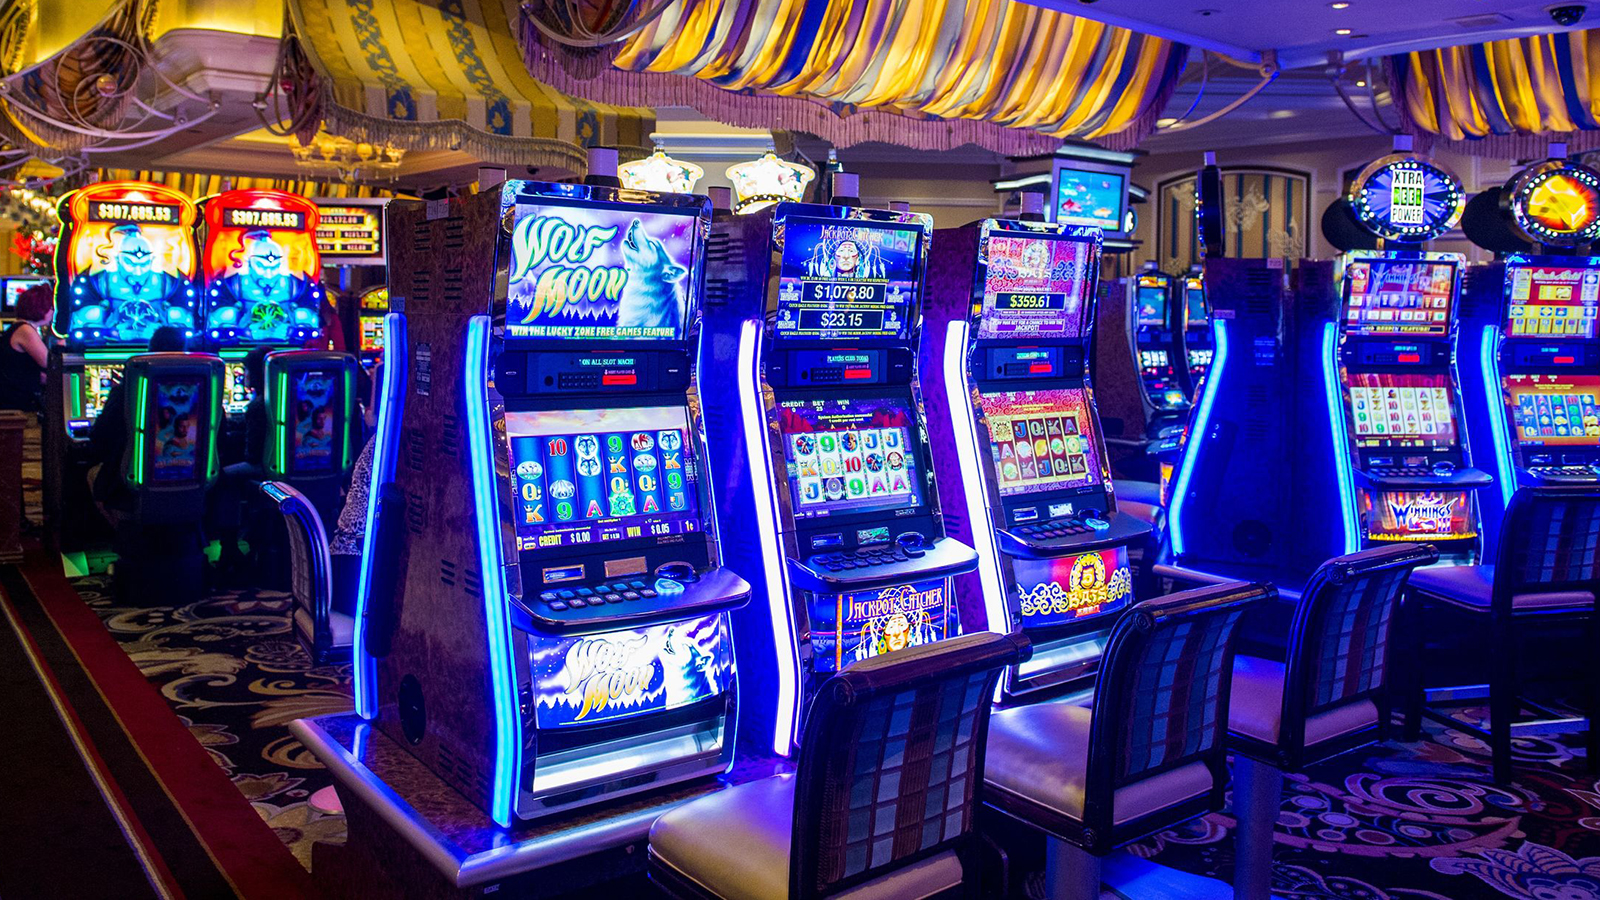 Casino online to multiply your capital